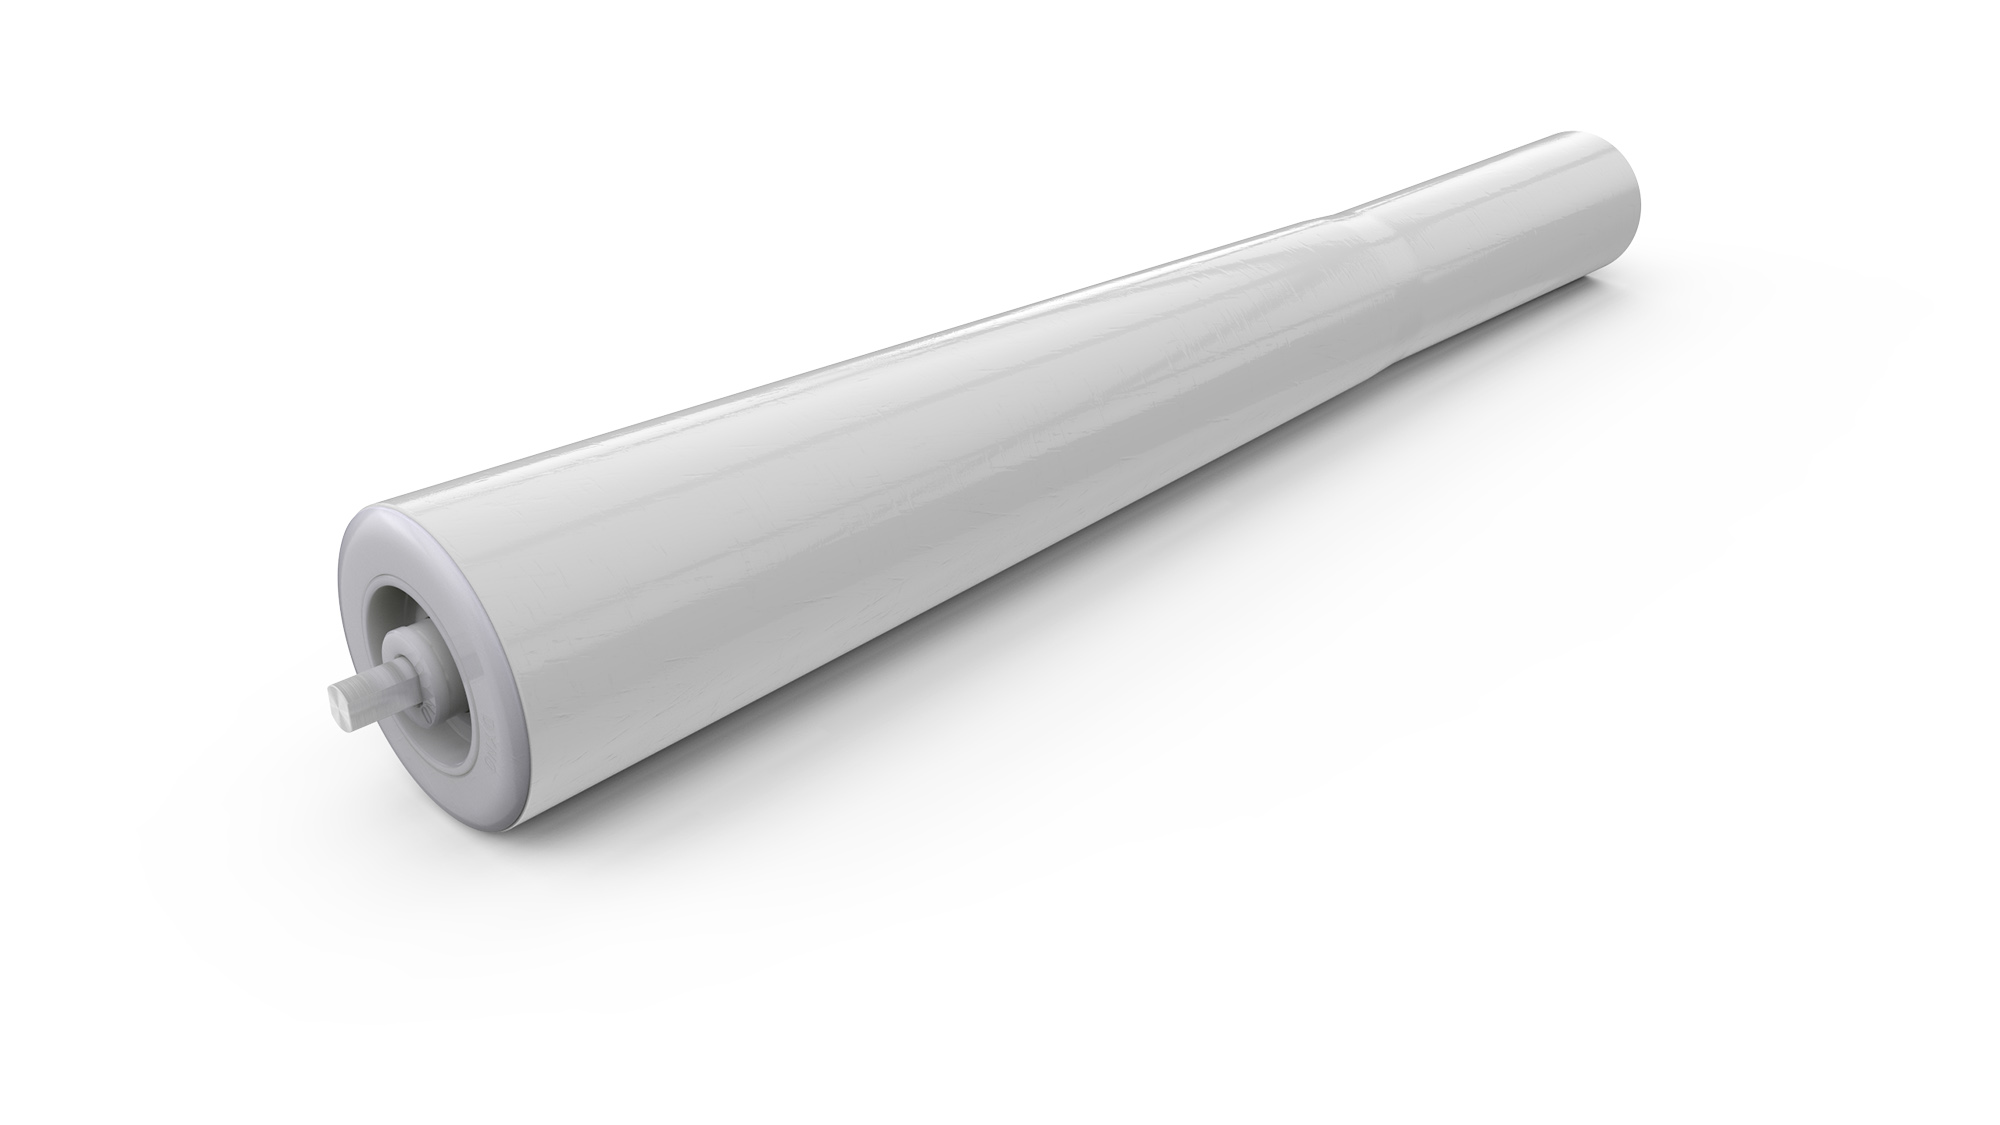 48mm Tapered PVC Roller | Dyno Conveyors - Roller, Belt, Chain and